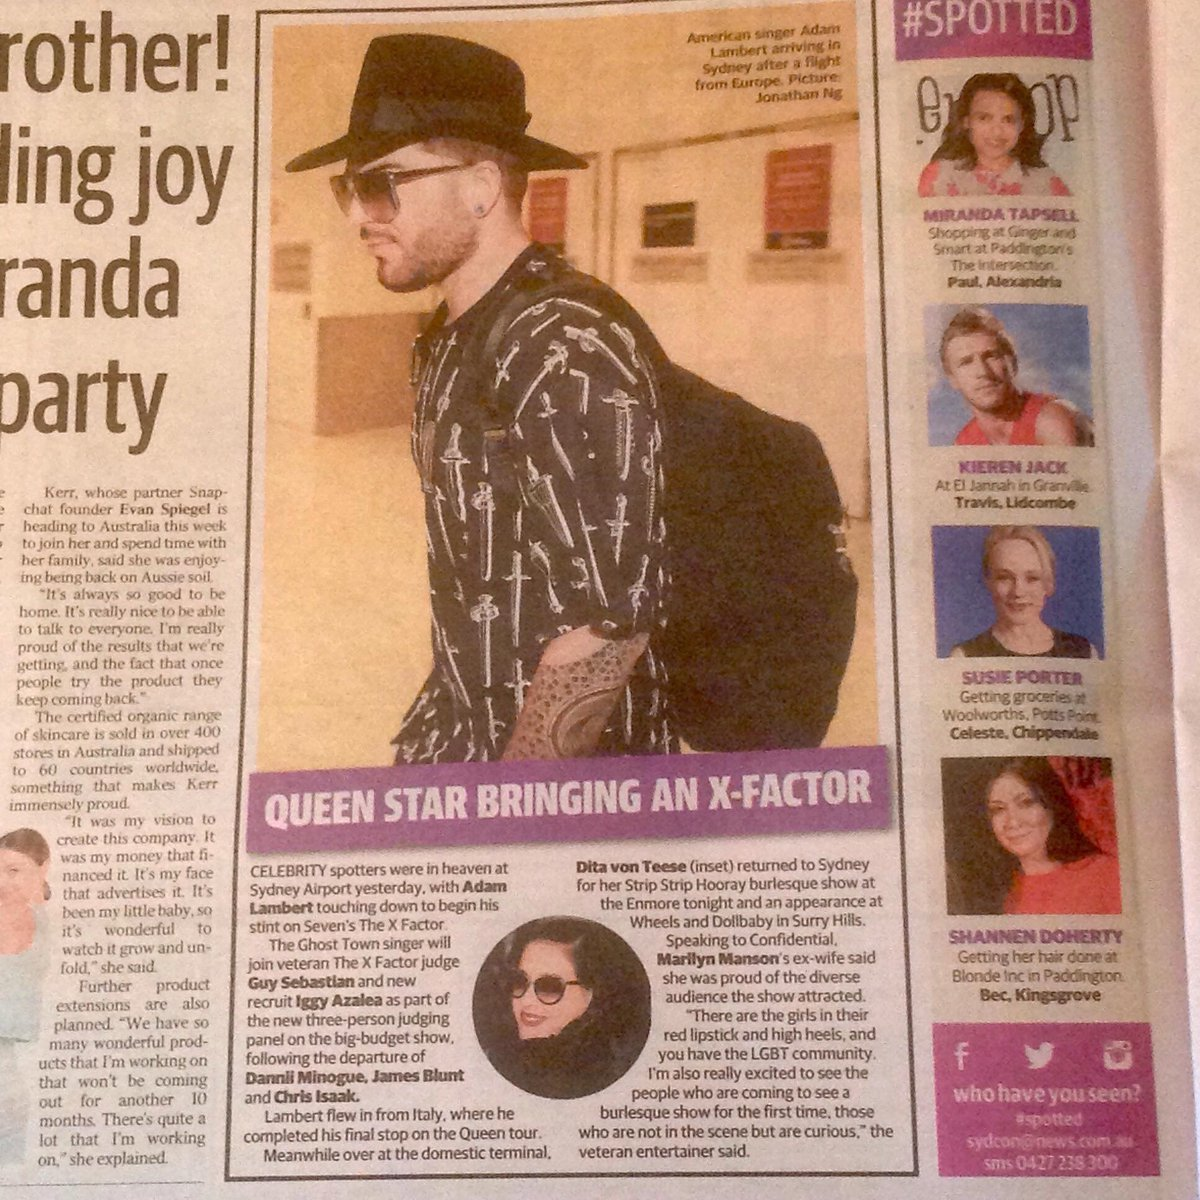 Adam Lambert Brings The X Factor in Oz Daily Telegraph - pic by Ainslie Watson https://t.co/Zwy6aOZAme